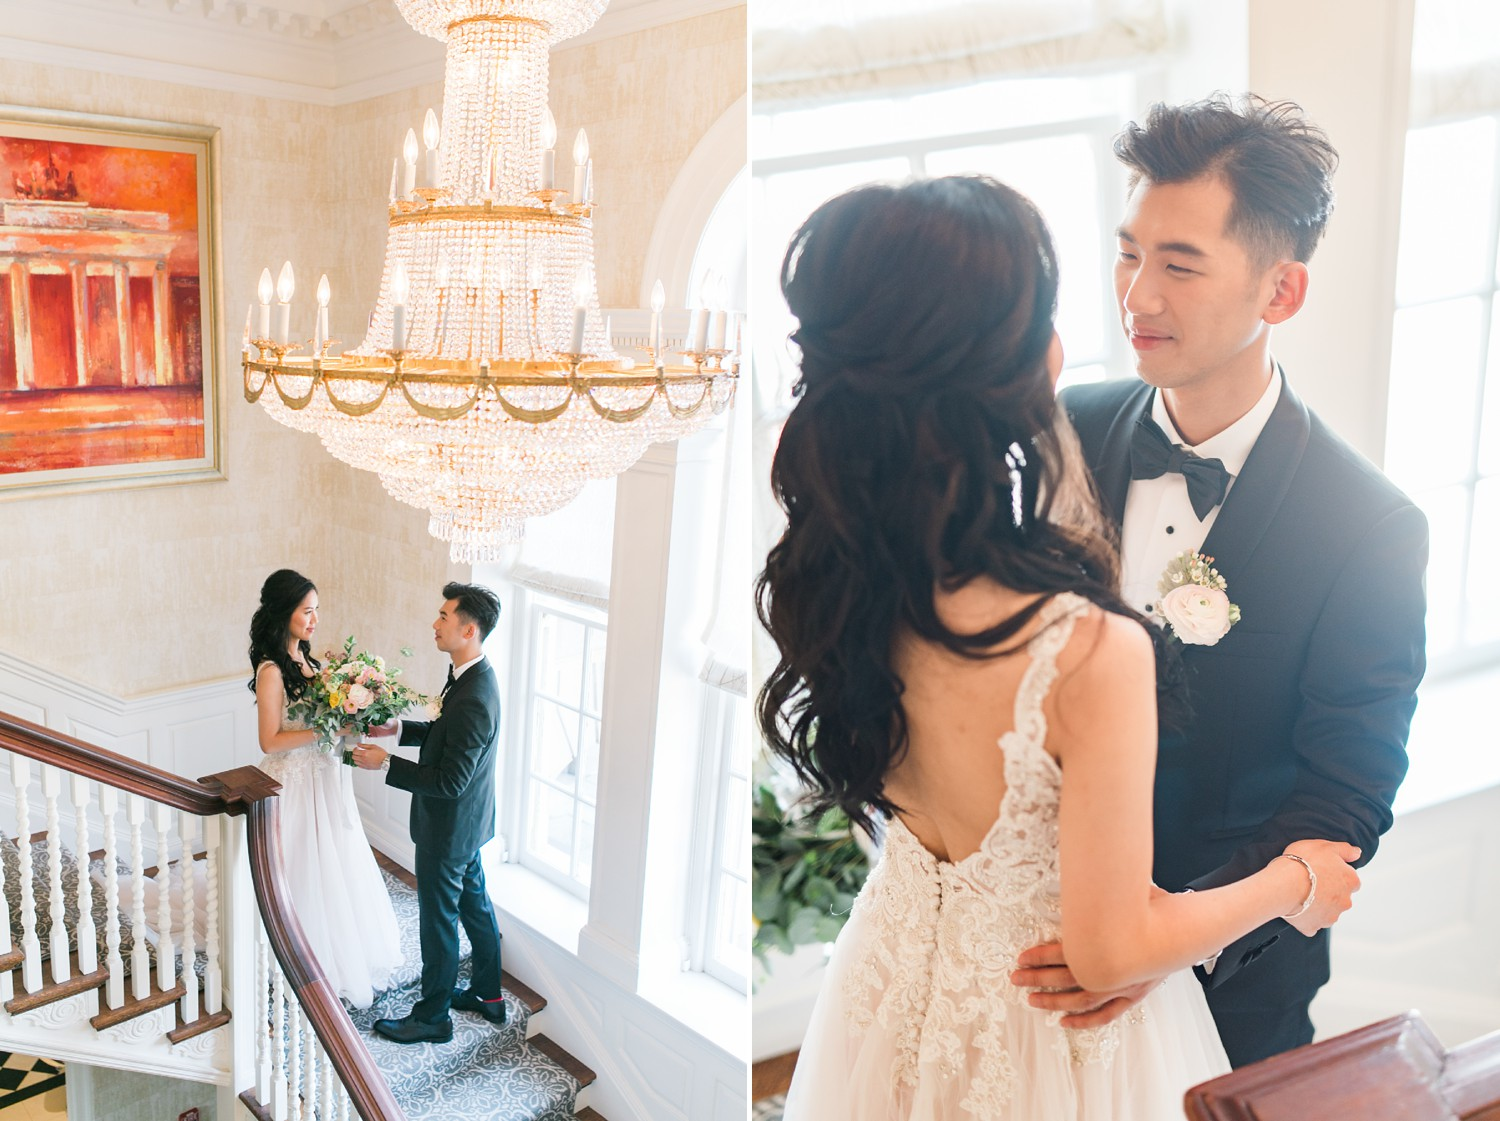 Toronto_Graydon_Hall_Wedding_Photos-Ireland-California-Arizona-Hong-Kong-Photographer-Rhythm_Photography